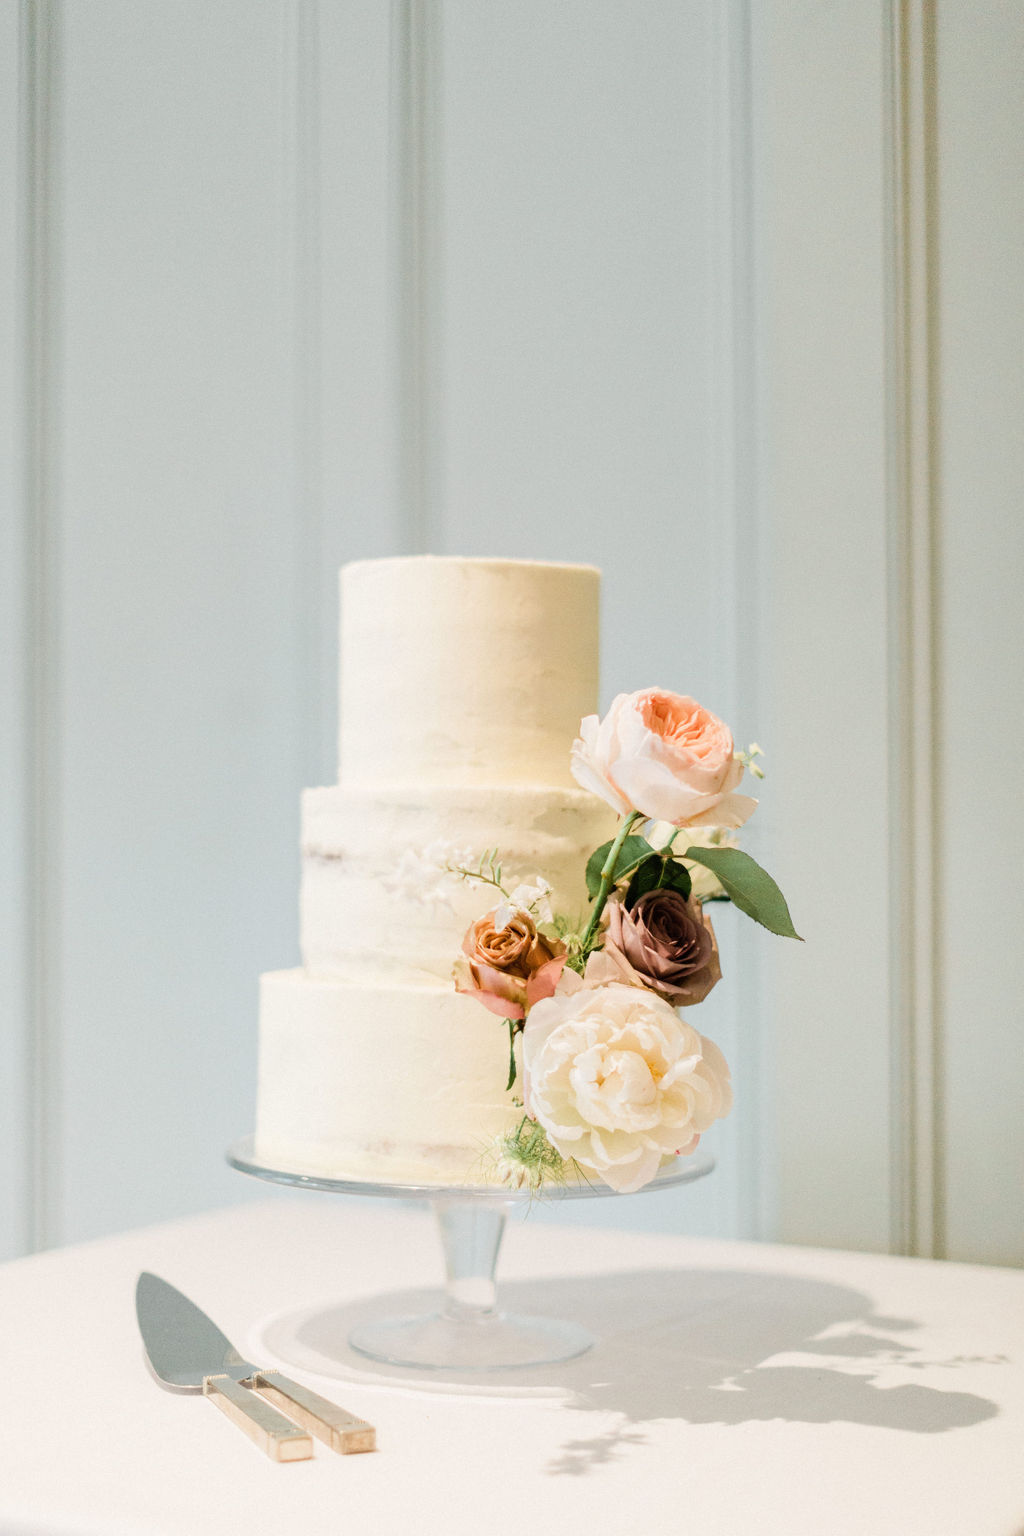 Understated, simply beautiful buttercream wedding cake decorated with a flourish of fresh flowers. Photo by Jacob & Pauline